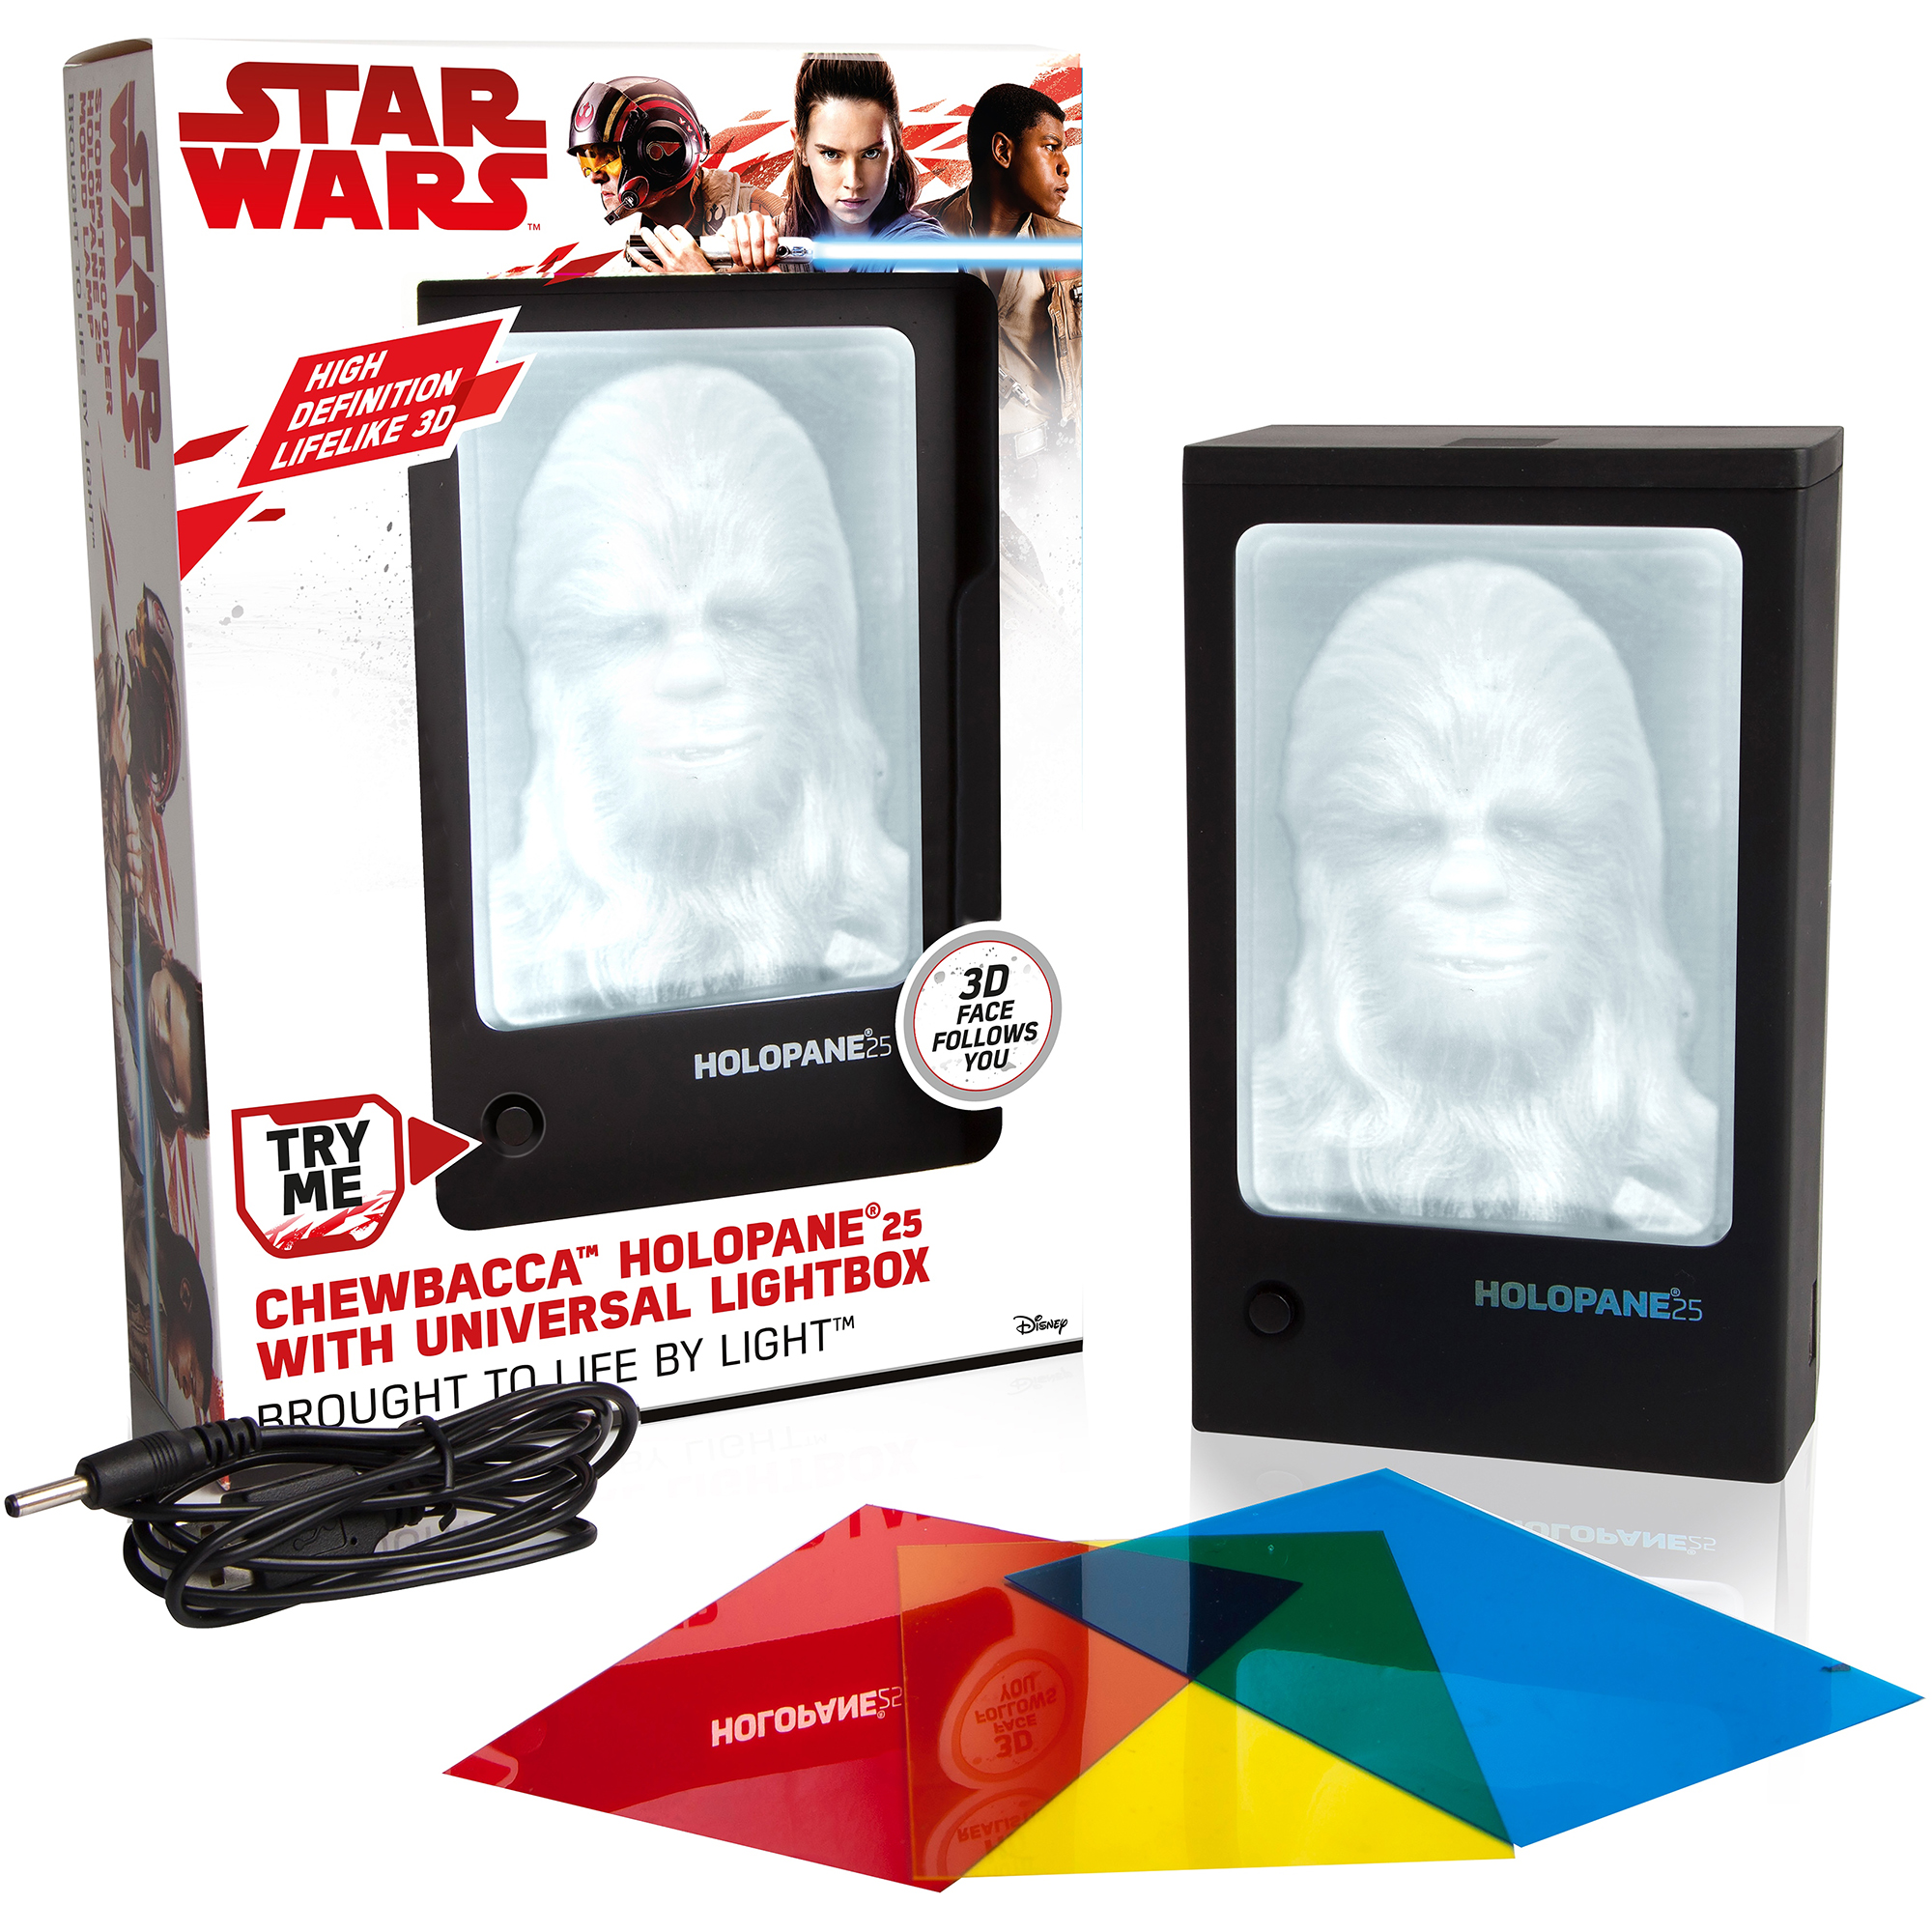 Star Wars Chewbacca Holopane